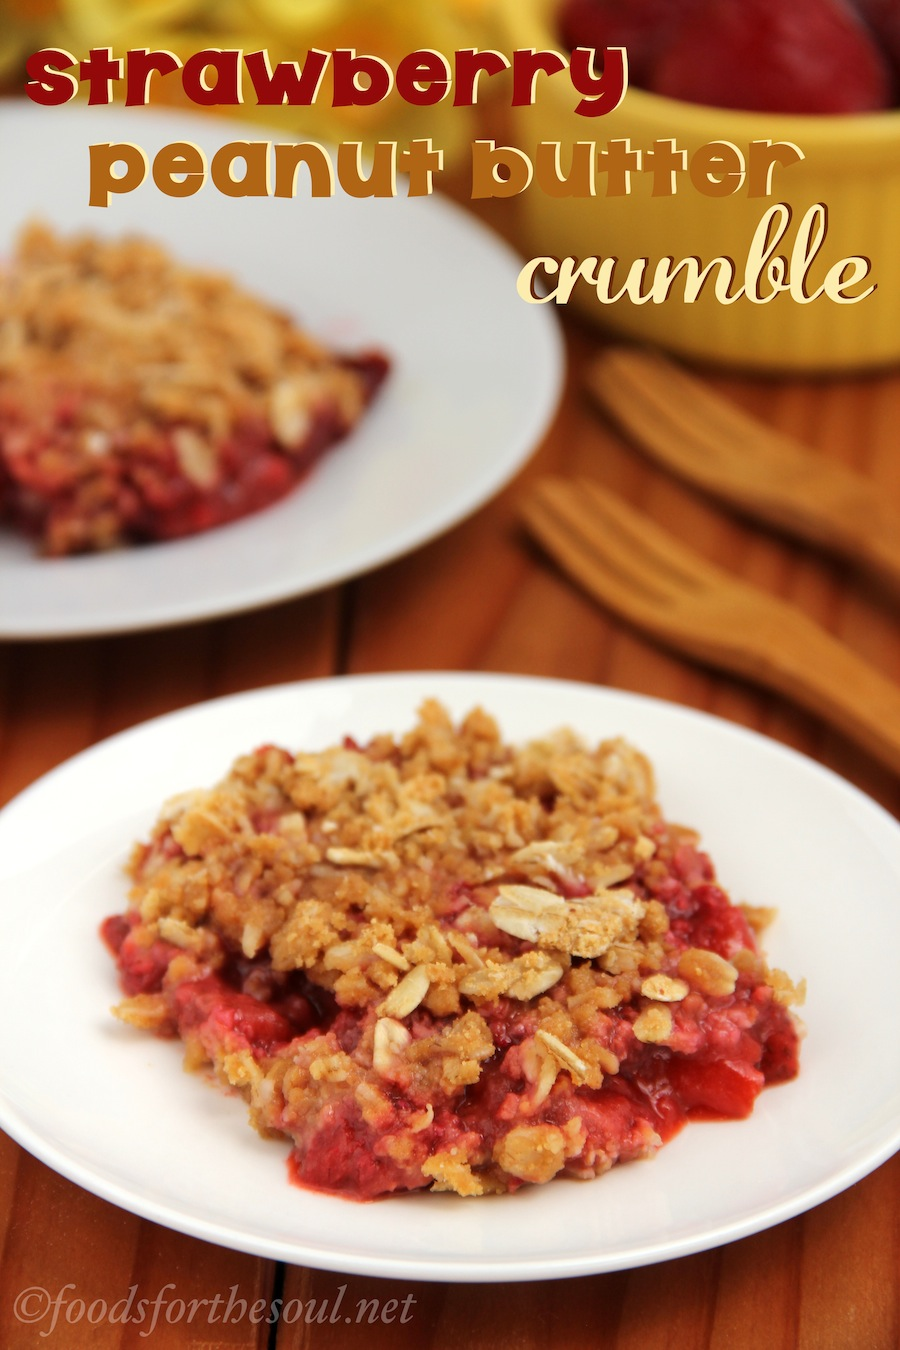 Strawberry Peanut Butter Crumble recipe -- like a PB&J as a dessert!